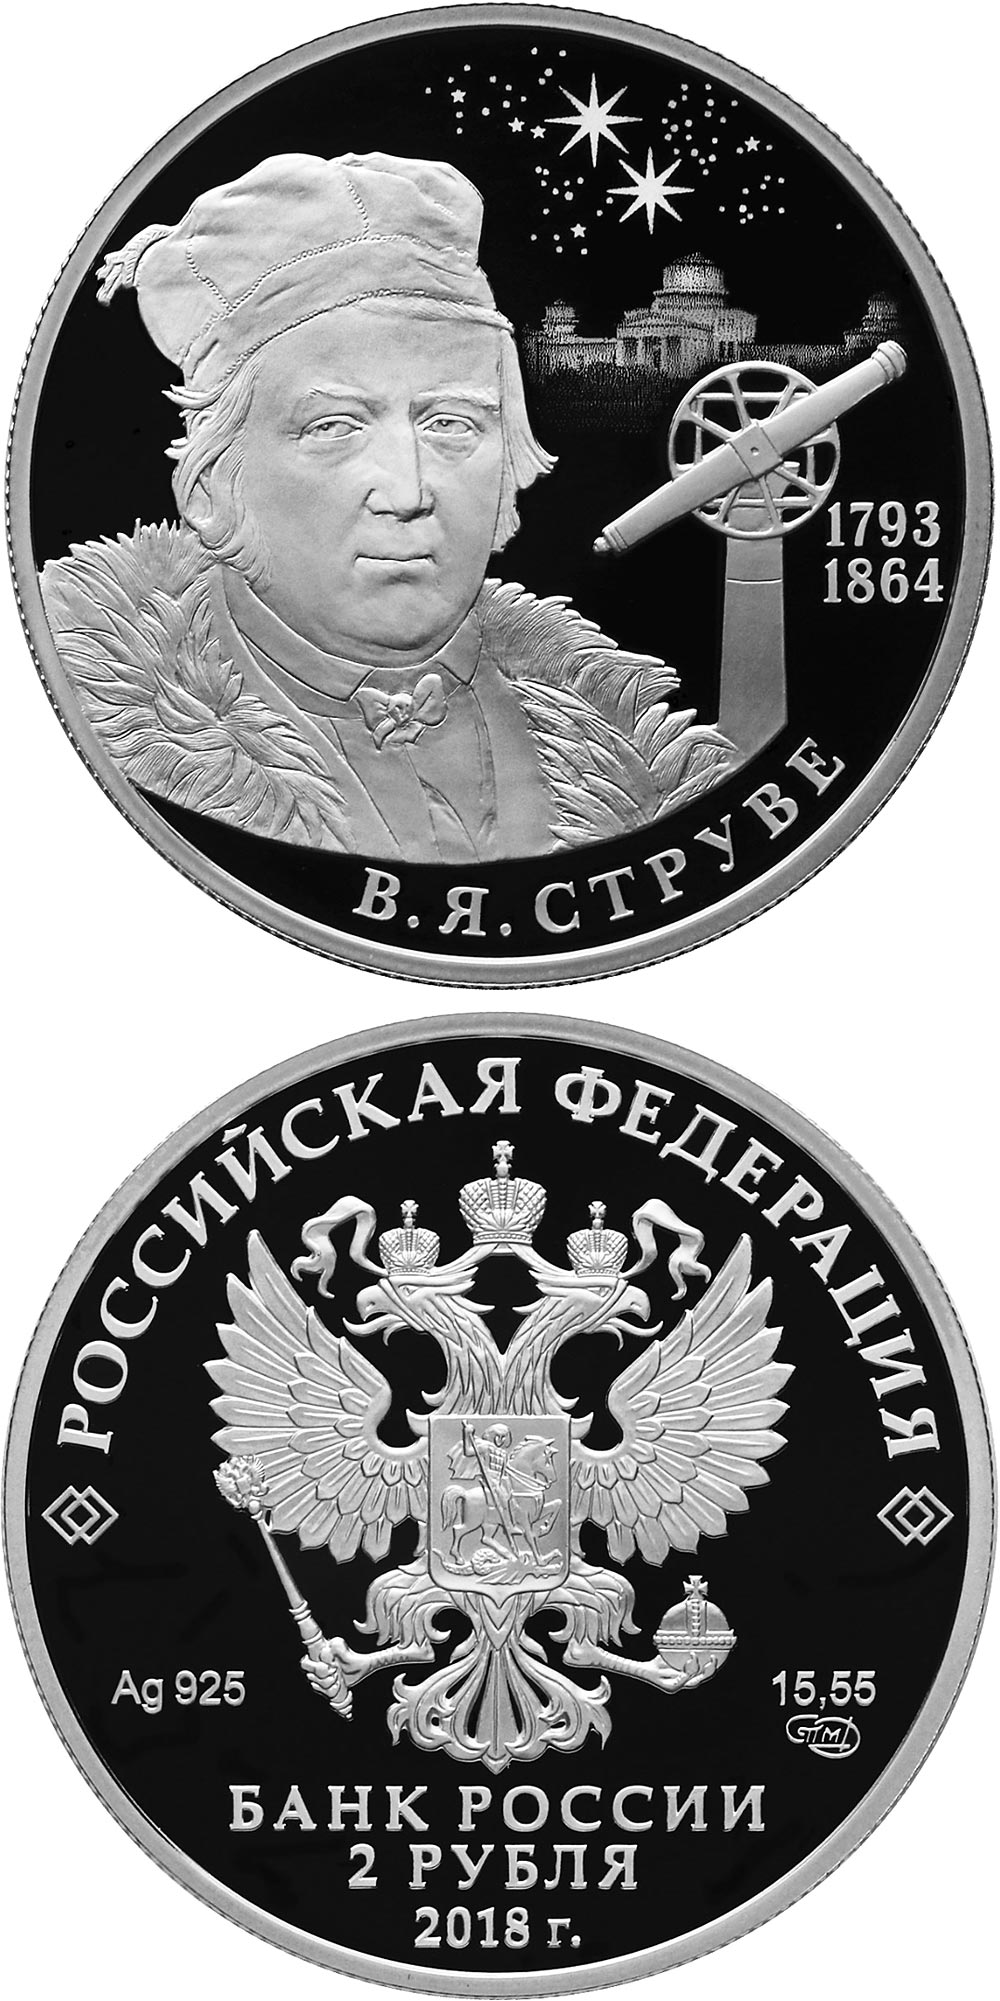 Image of 2 rubles coin – The 225th Anniversary of the astronomer and geodesist V.Ya. Struve | Russia 2018.  The Silver coin is of Proof quality.